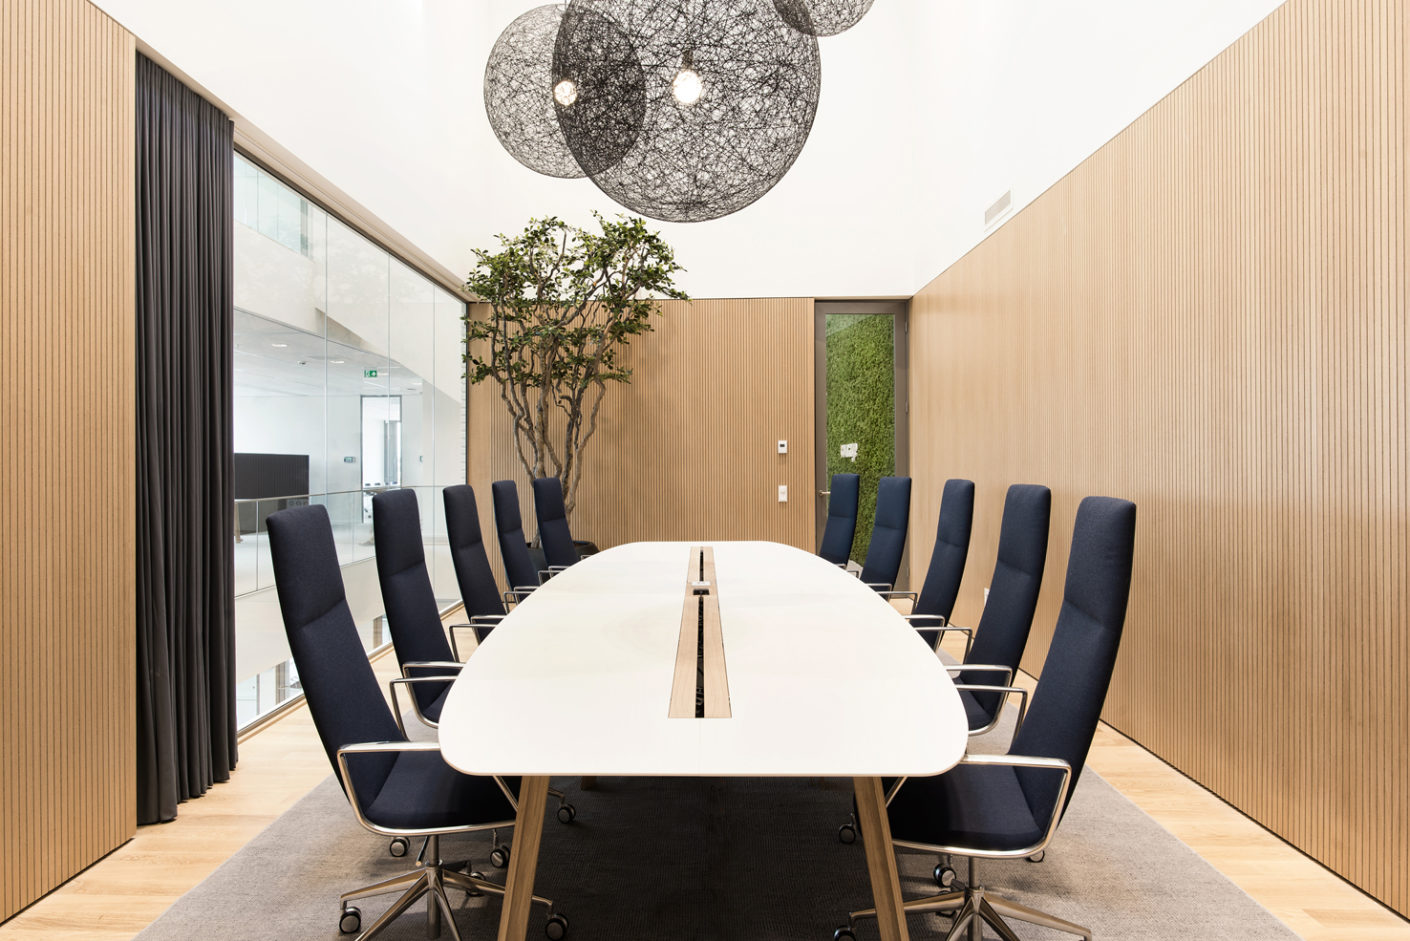 """Lievore Altherr Molina avoided any visible technology in their design for the """"Catifa Sensit"""" office chair, which combines ergonomic seating comfort with elegant contours."""